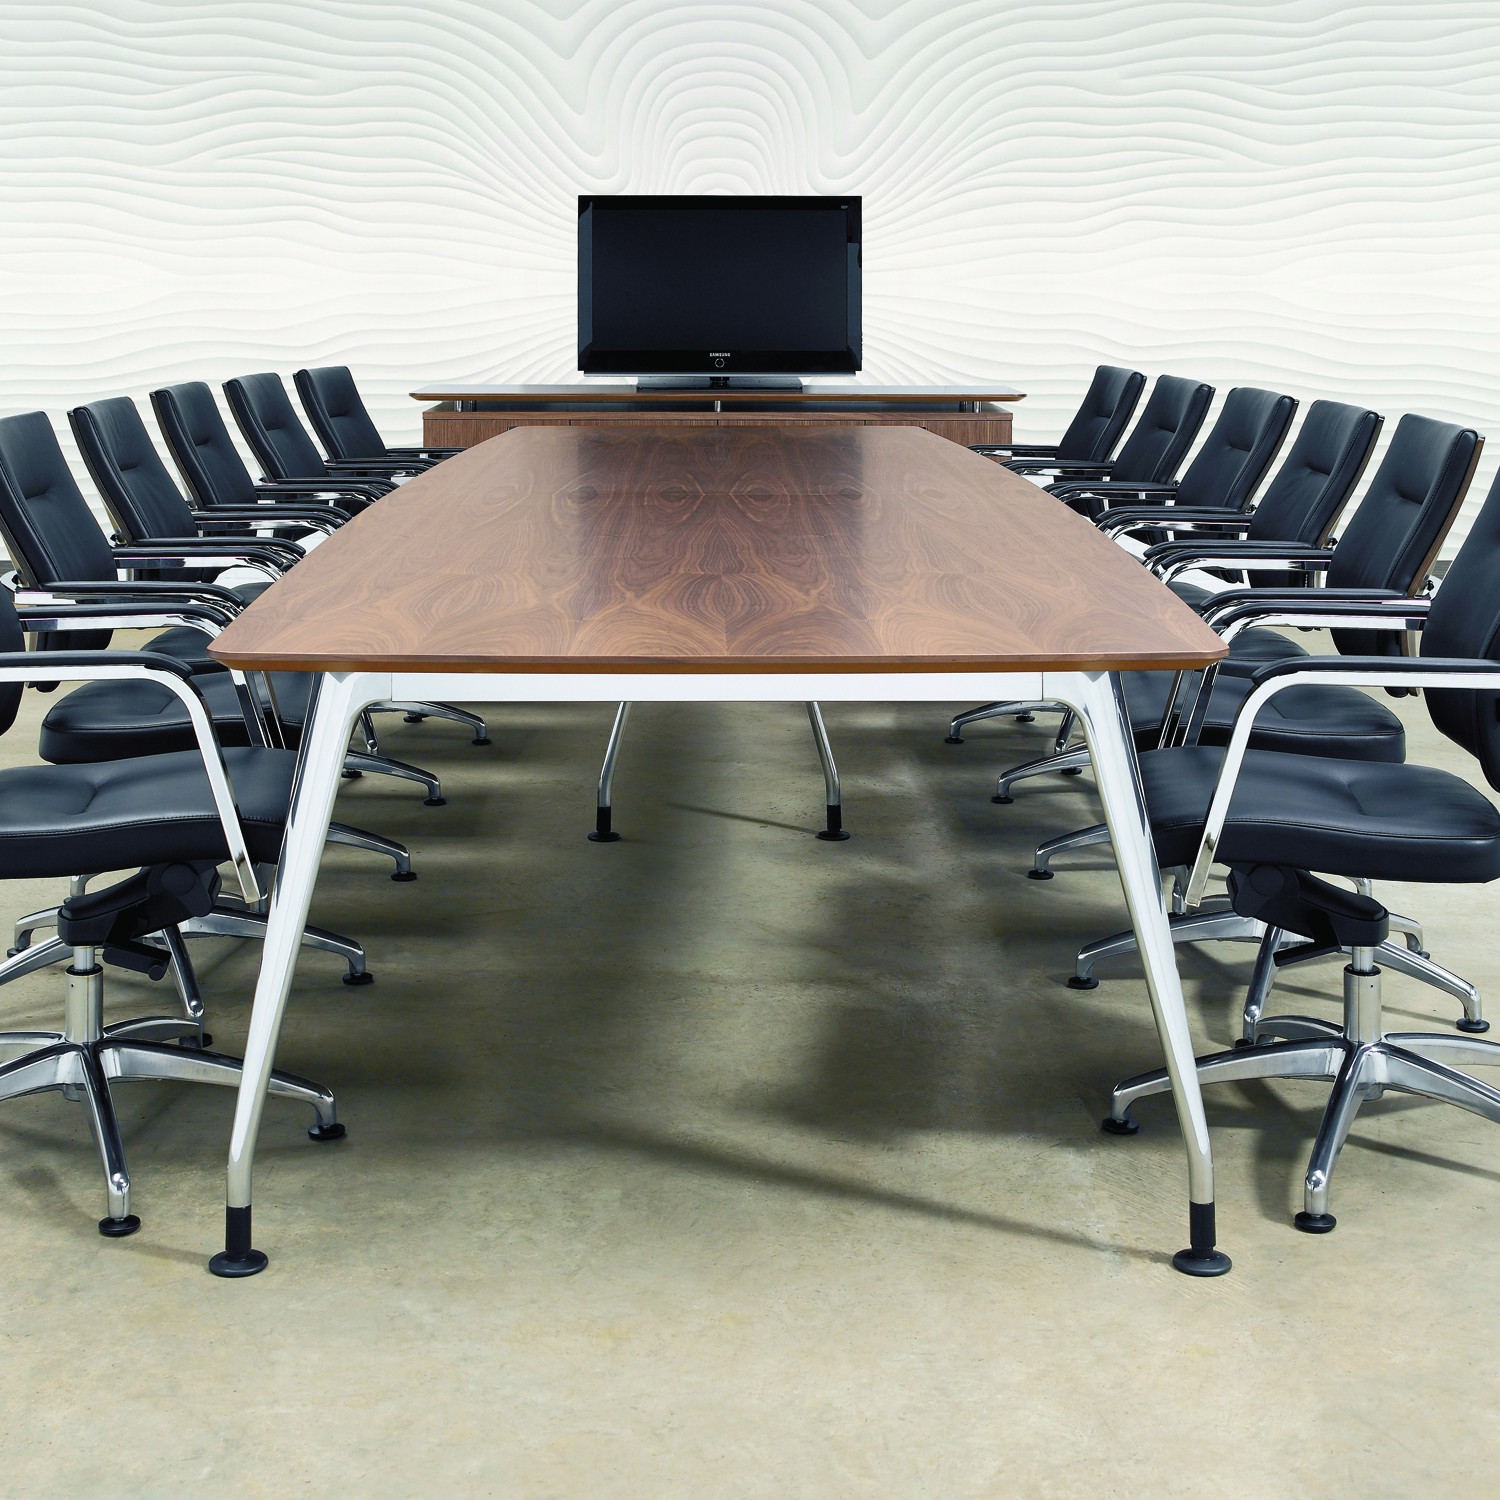 DNA Meeting Table by Verco